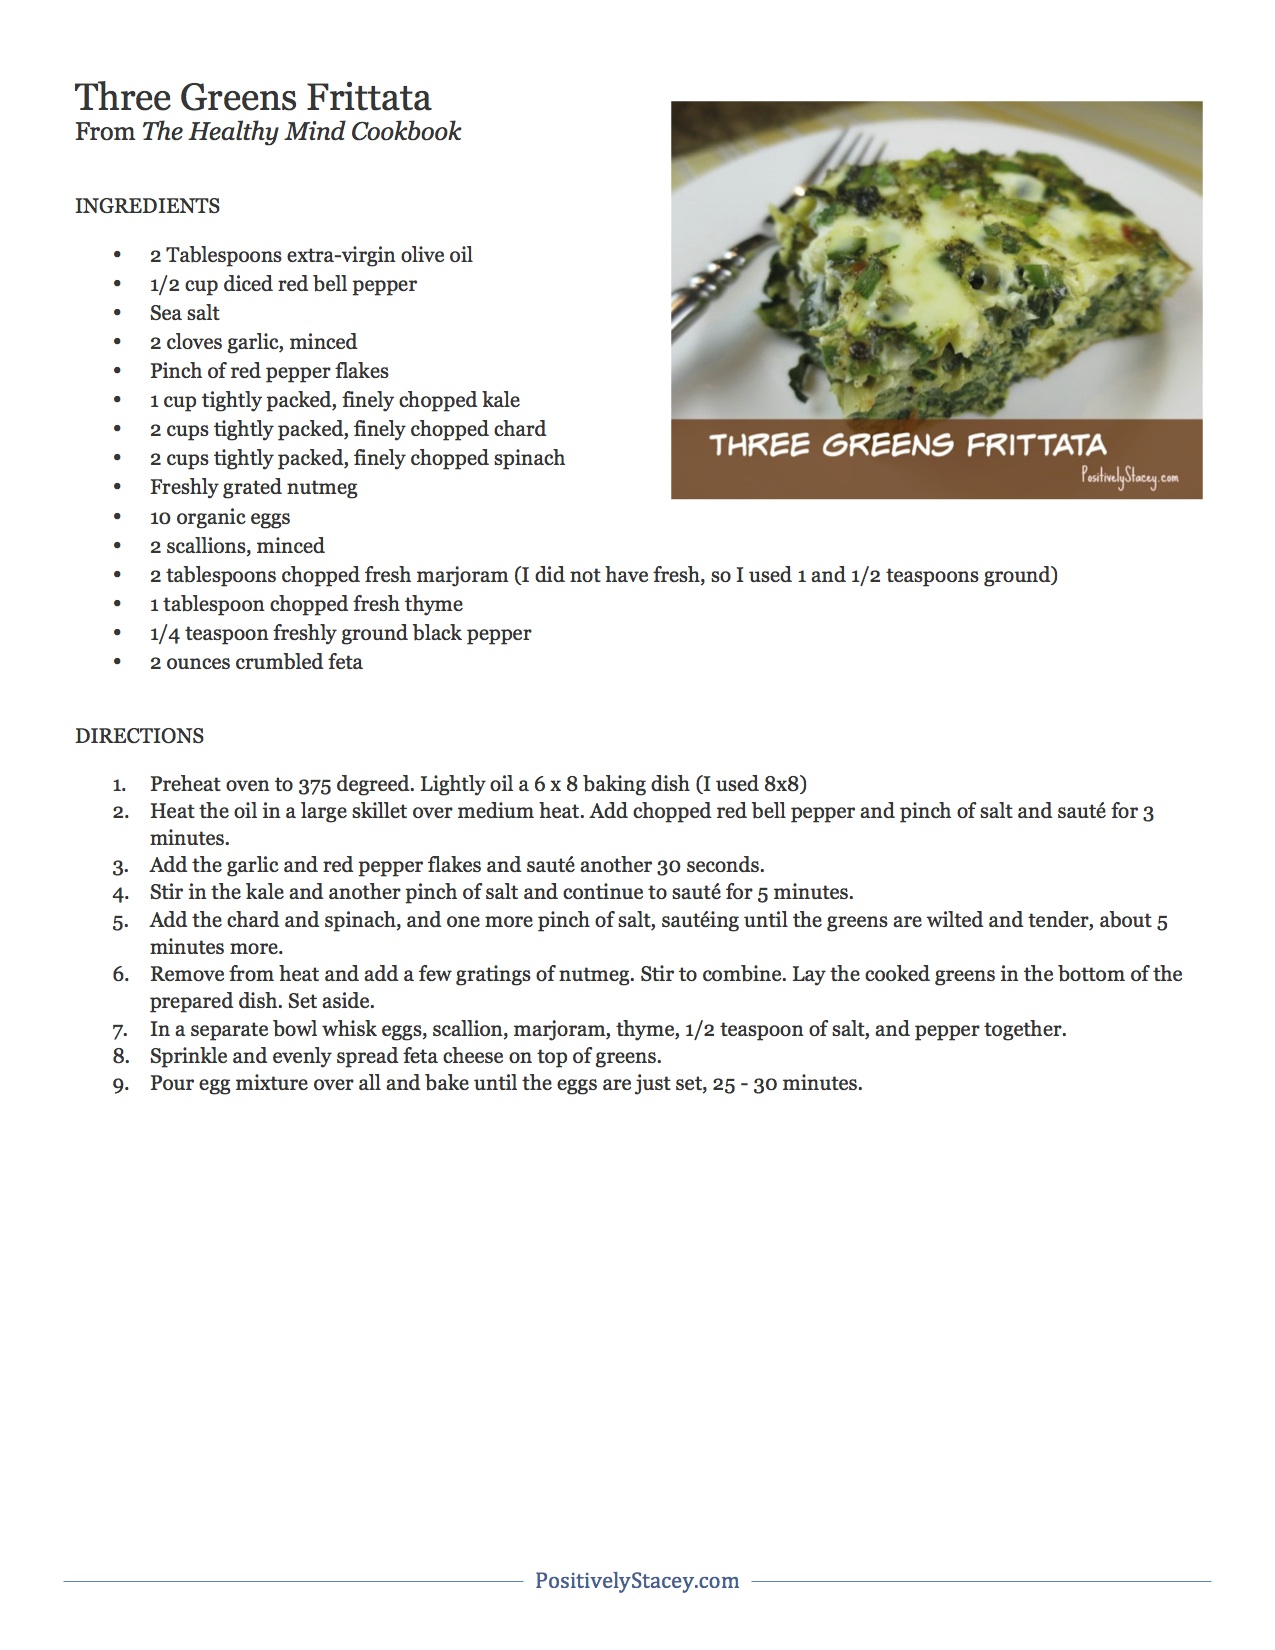 Three Greens Frittata Recipe